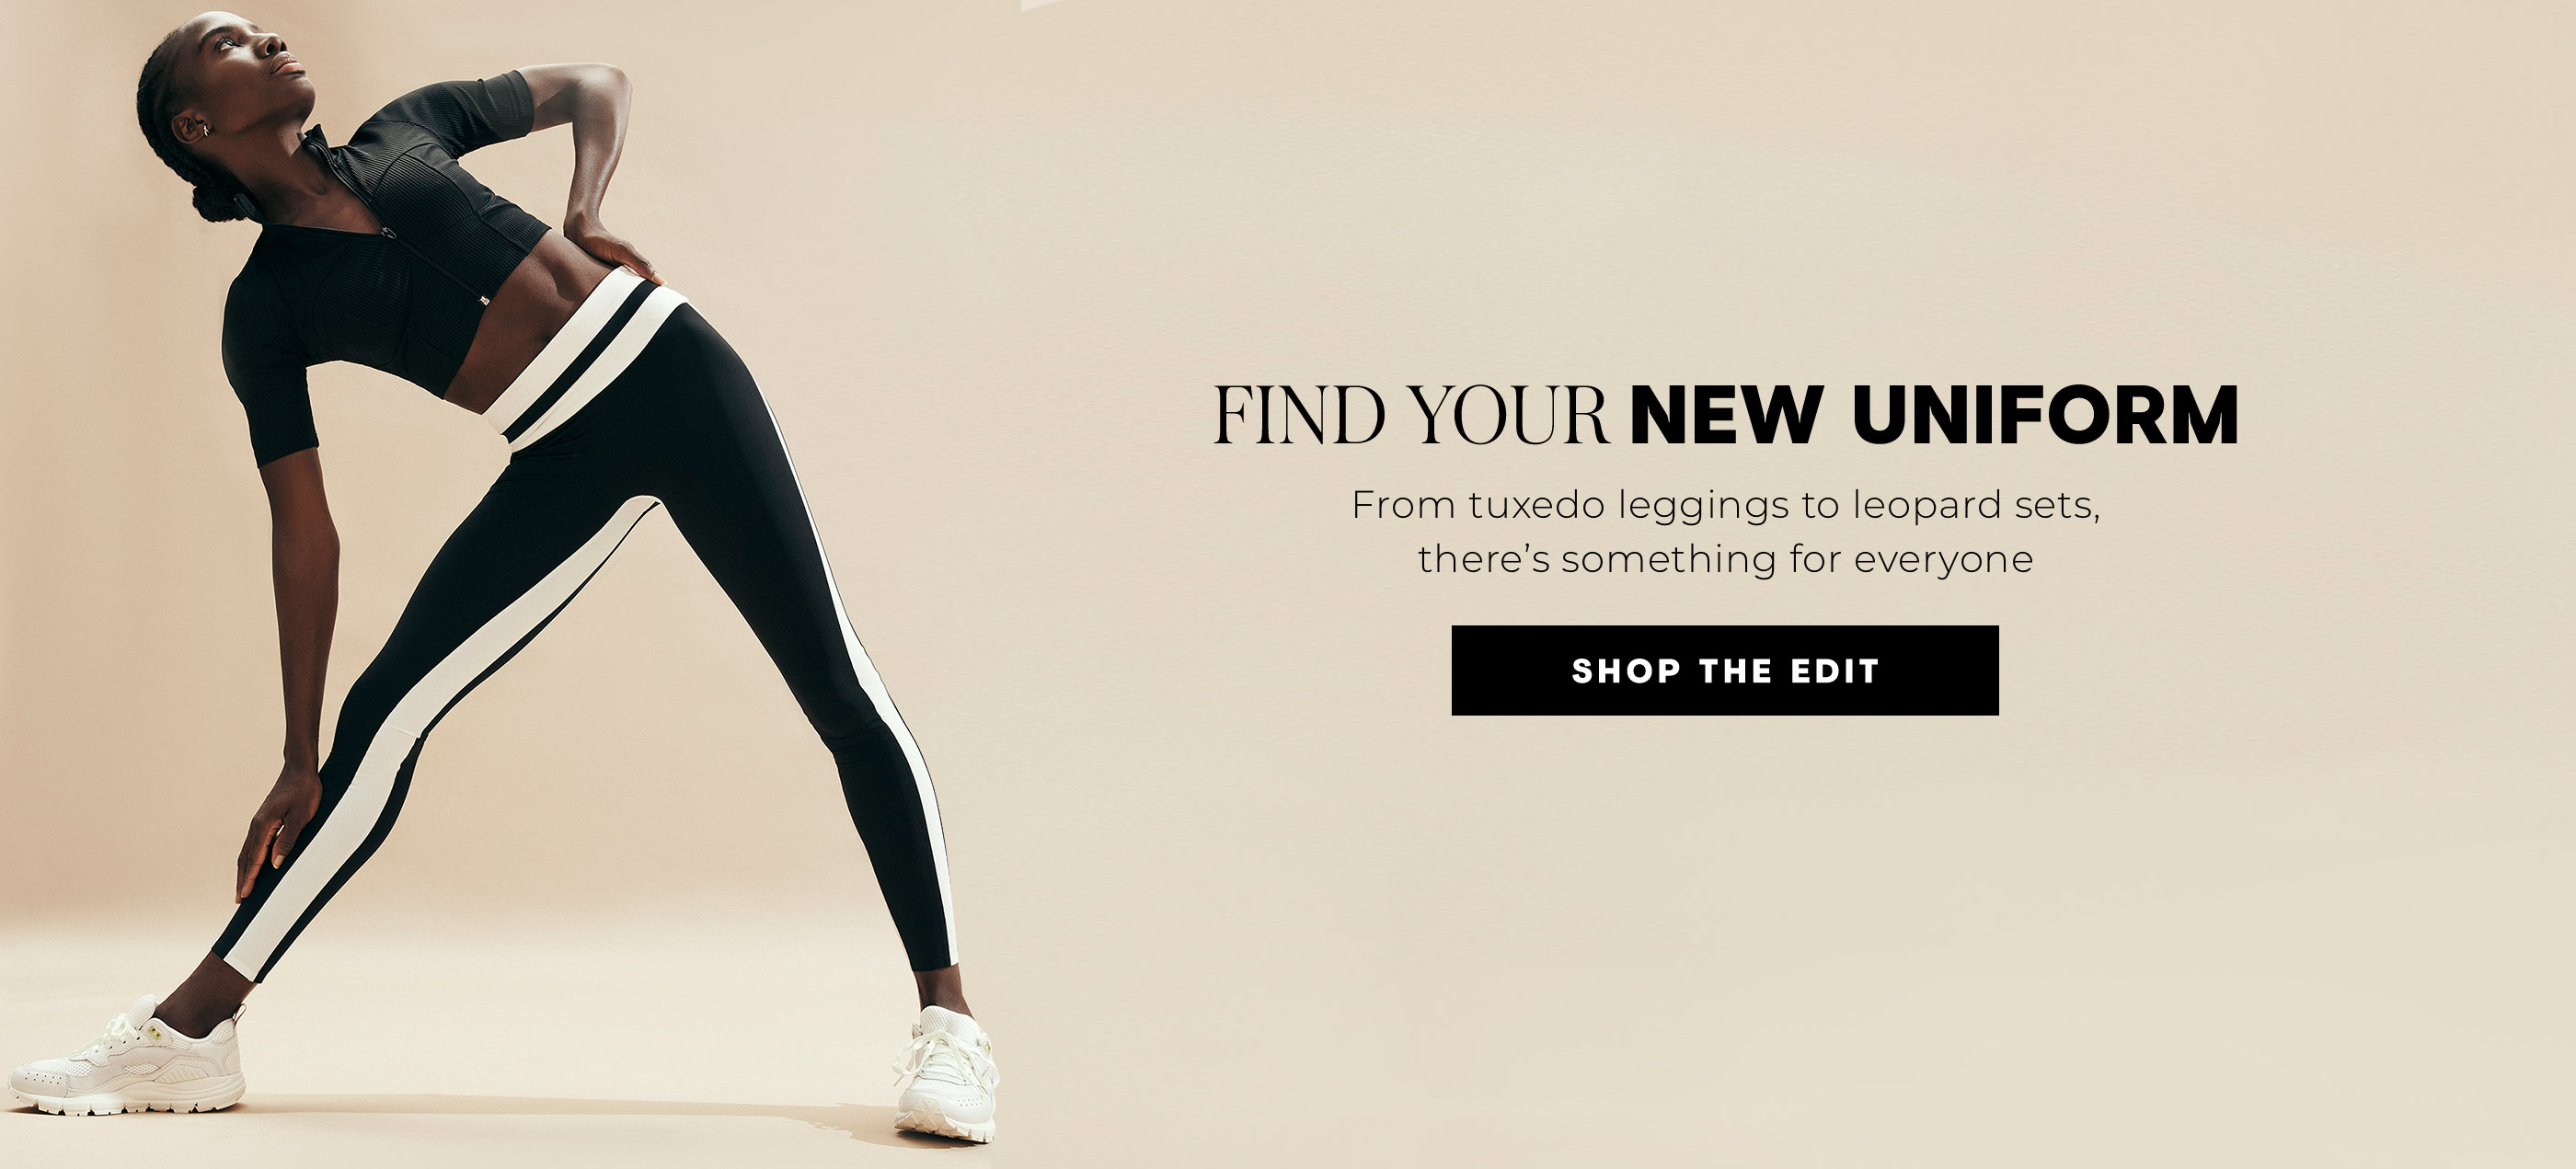 Find Your New Uniform From tuxedo leggings to leopard sets, there's something for everyone